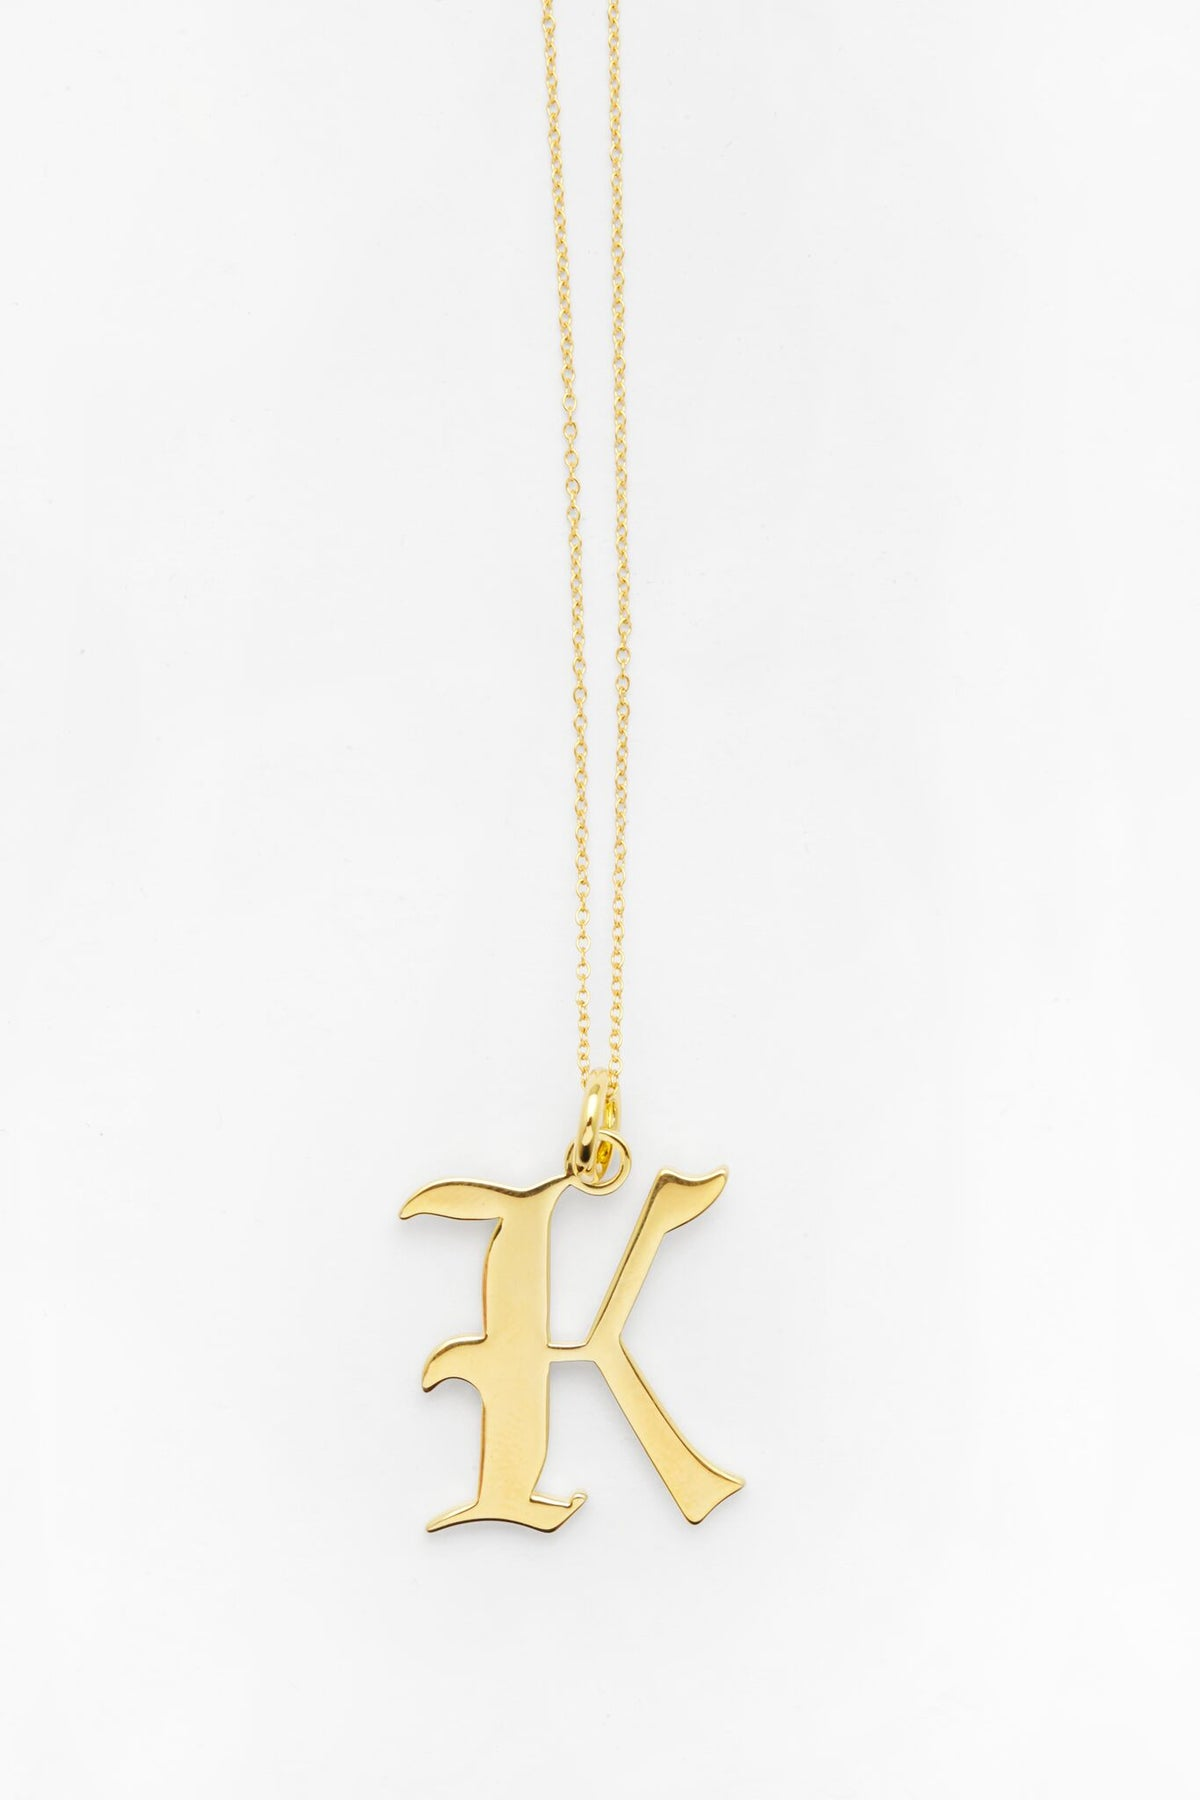 Gold Letter K Necklace